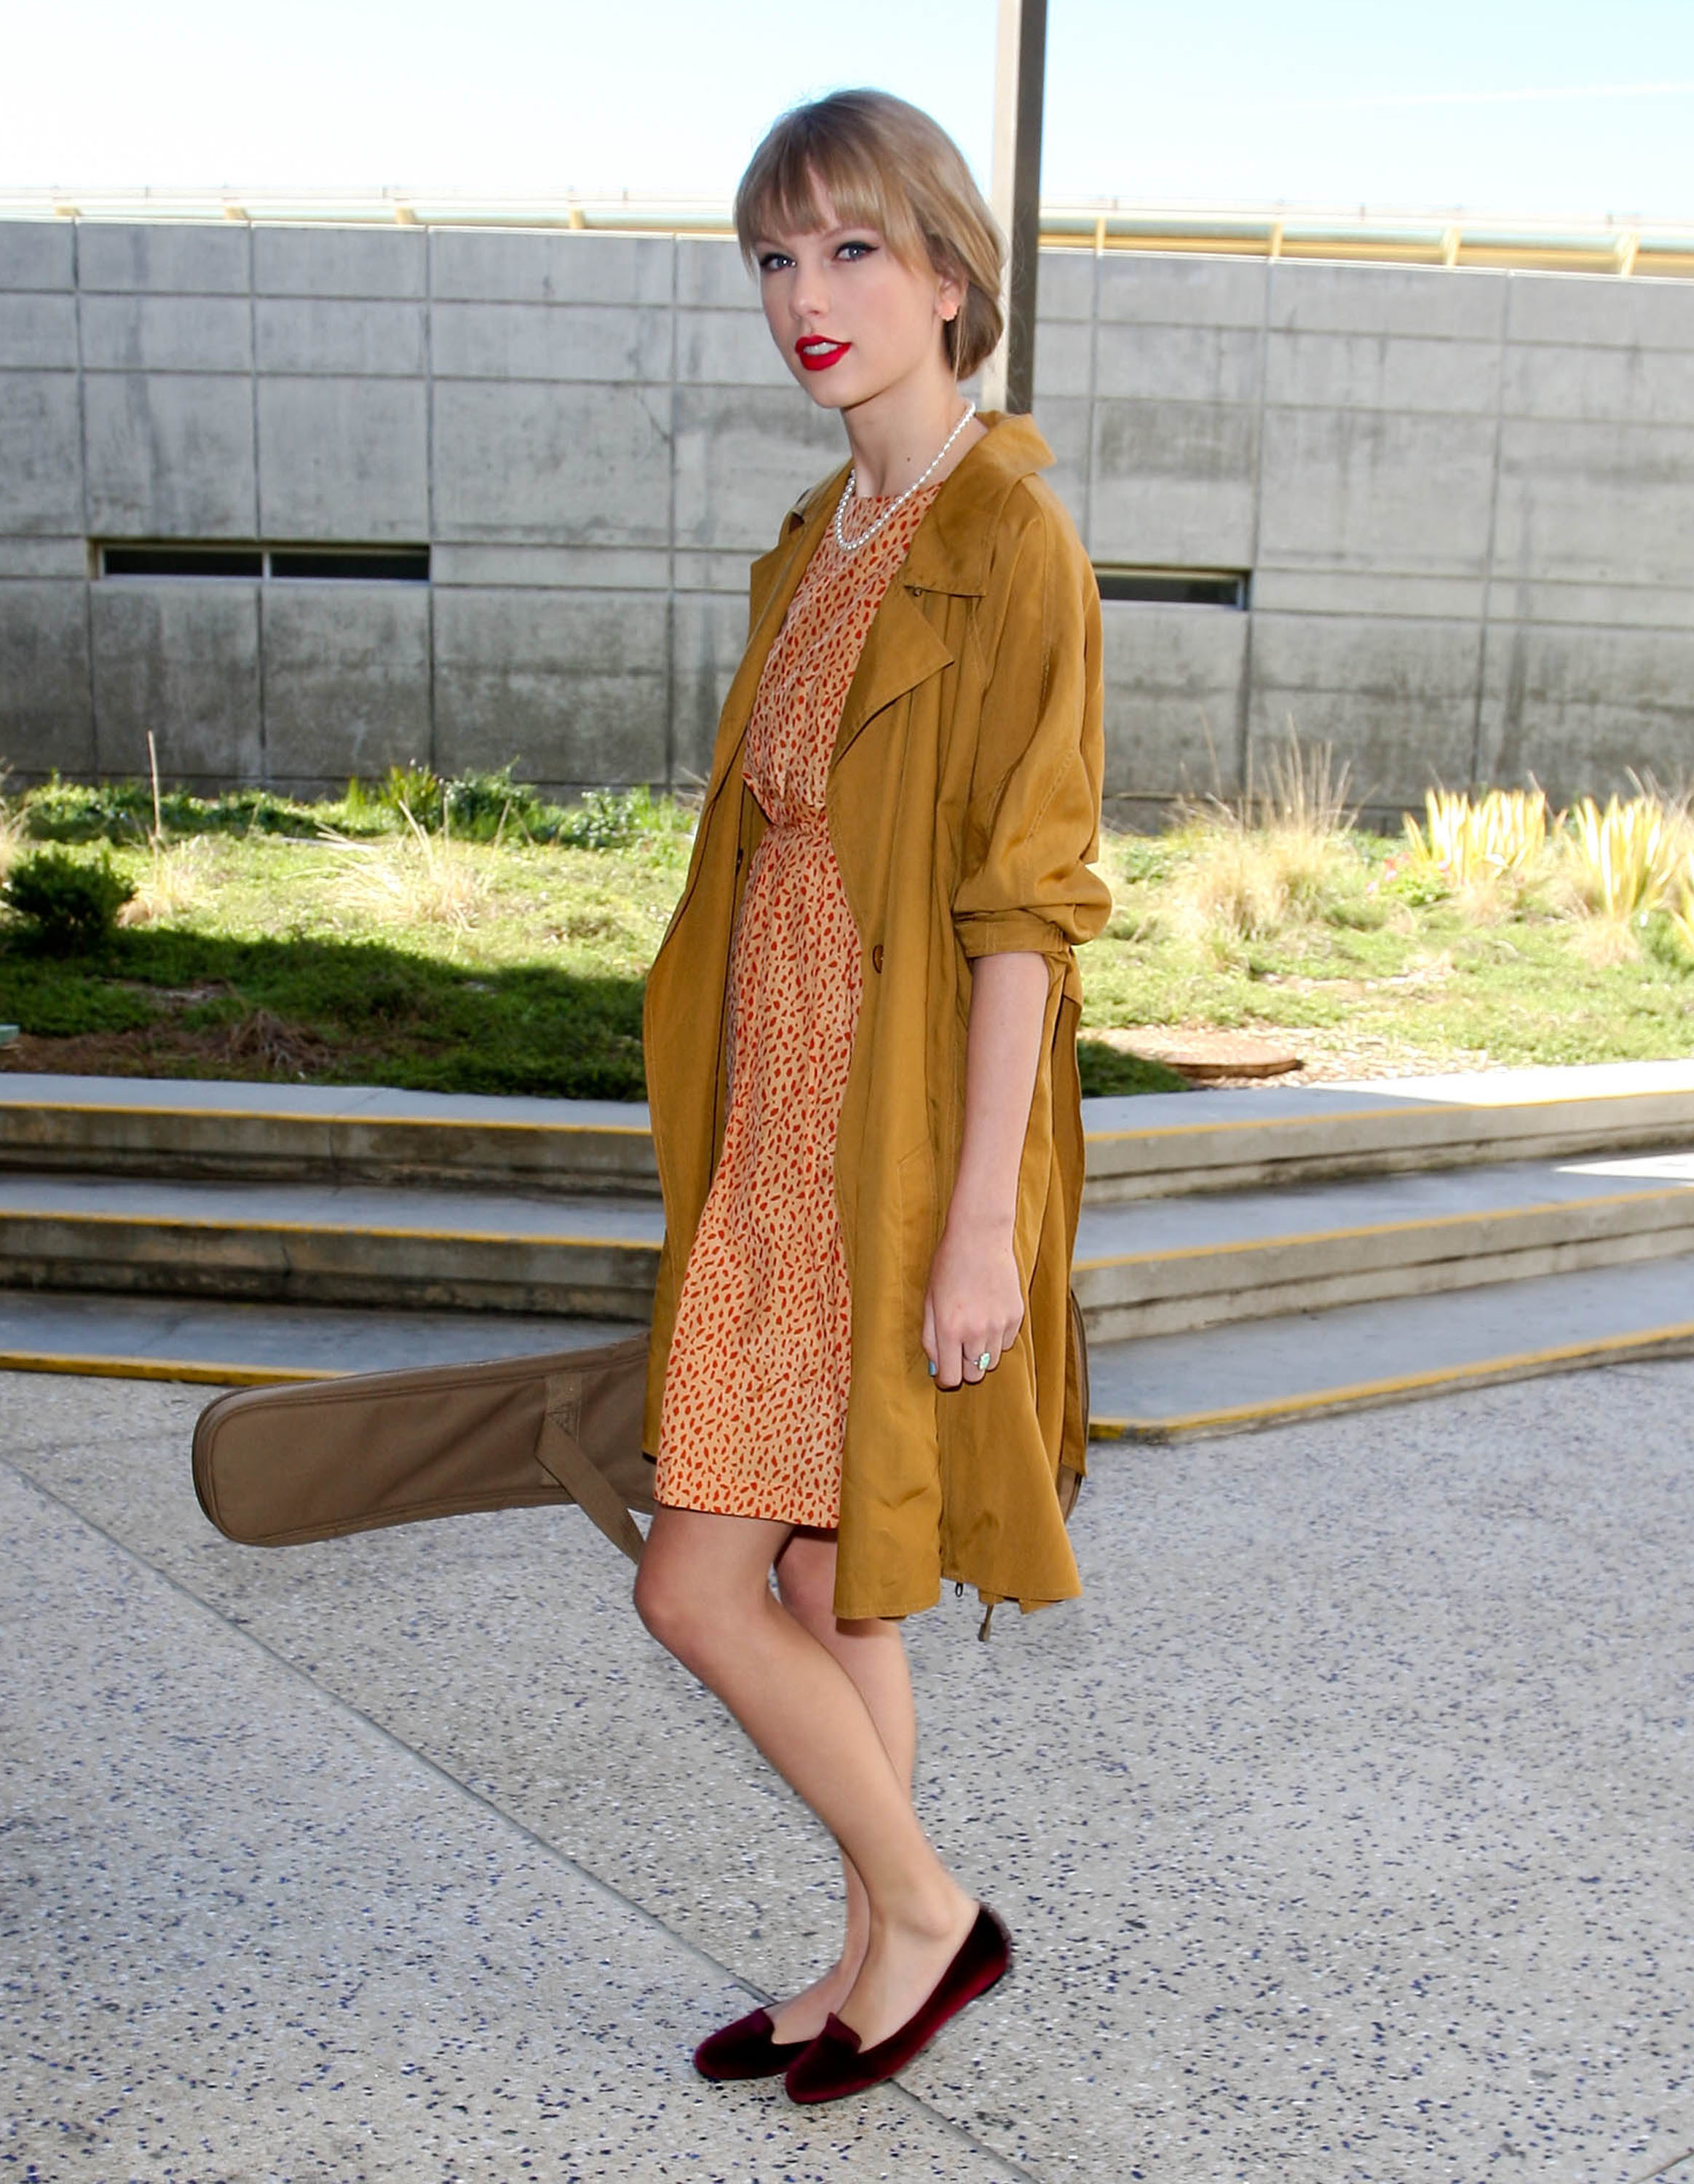 Taylor Swift travel style